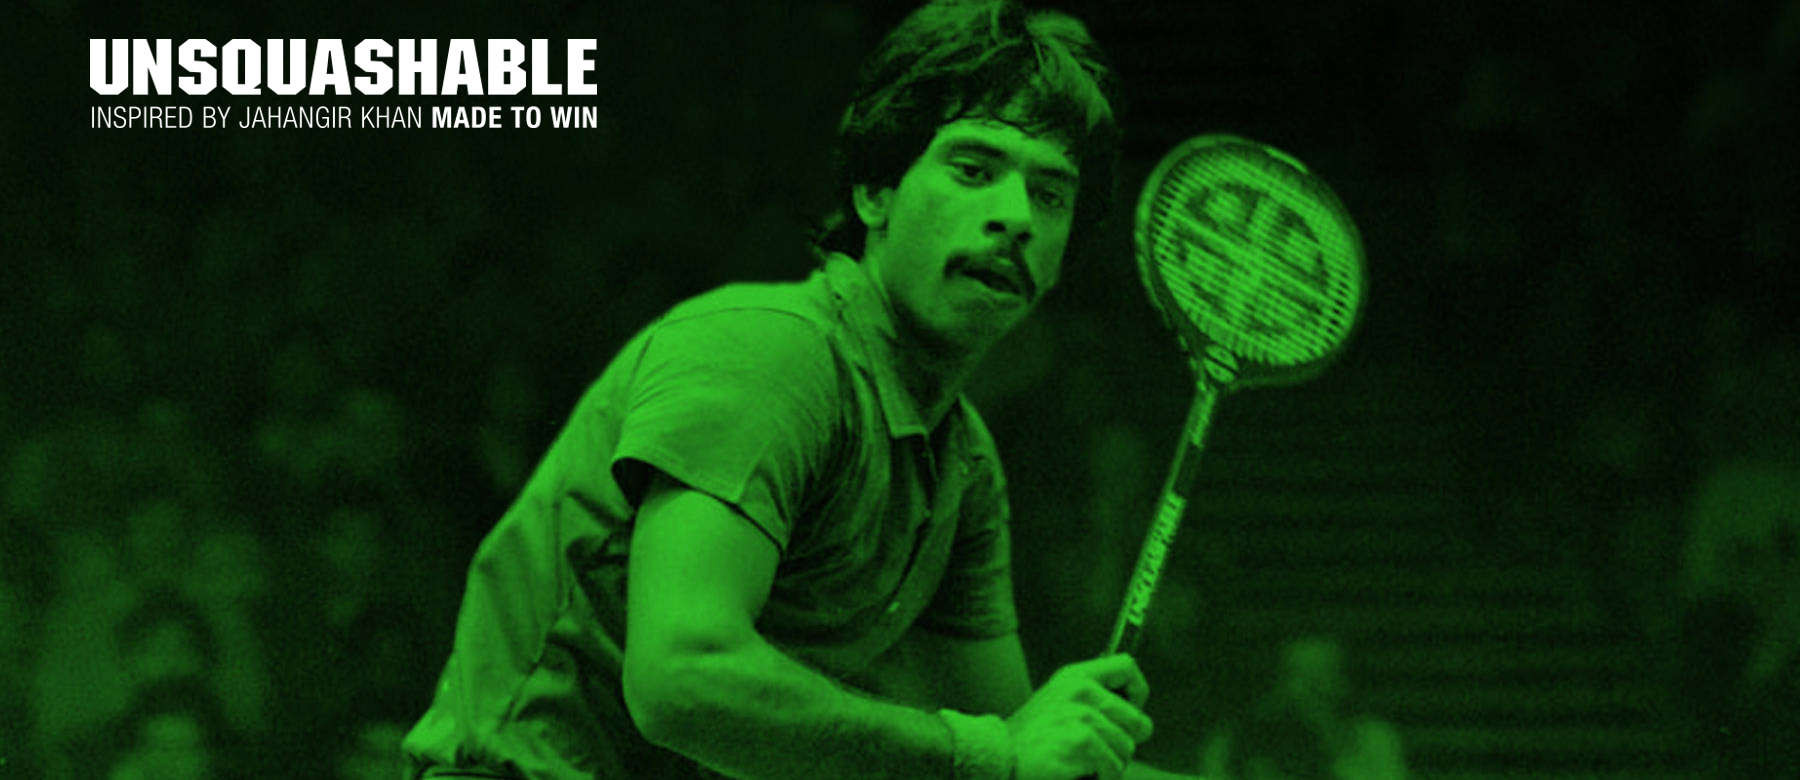 Unsquashable Inspired by Jahangir Khan